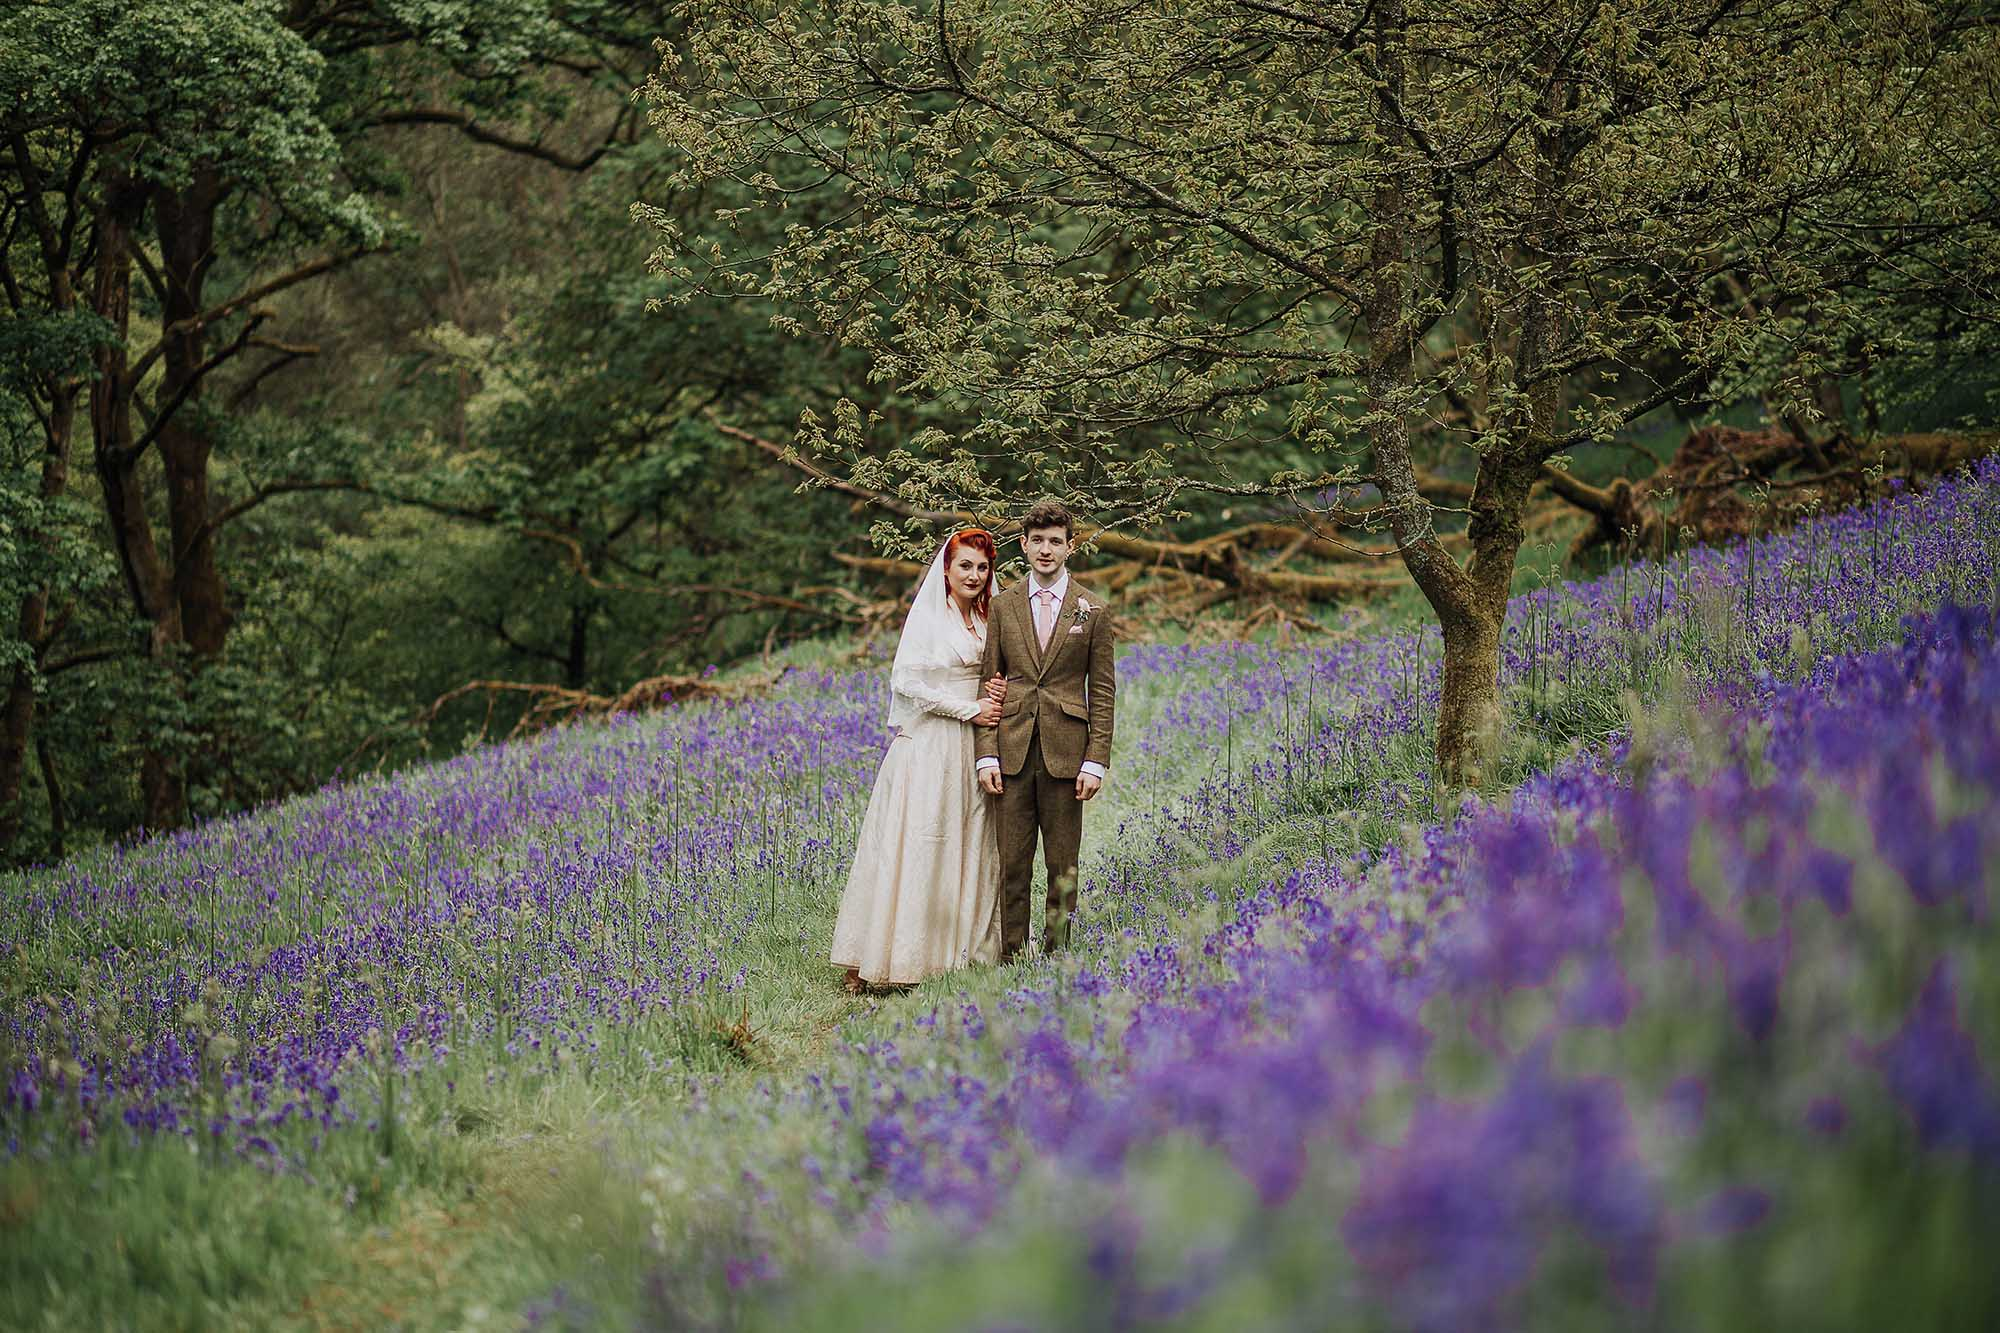 Hardcastle Crags Wedding